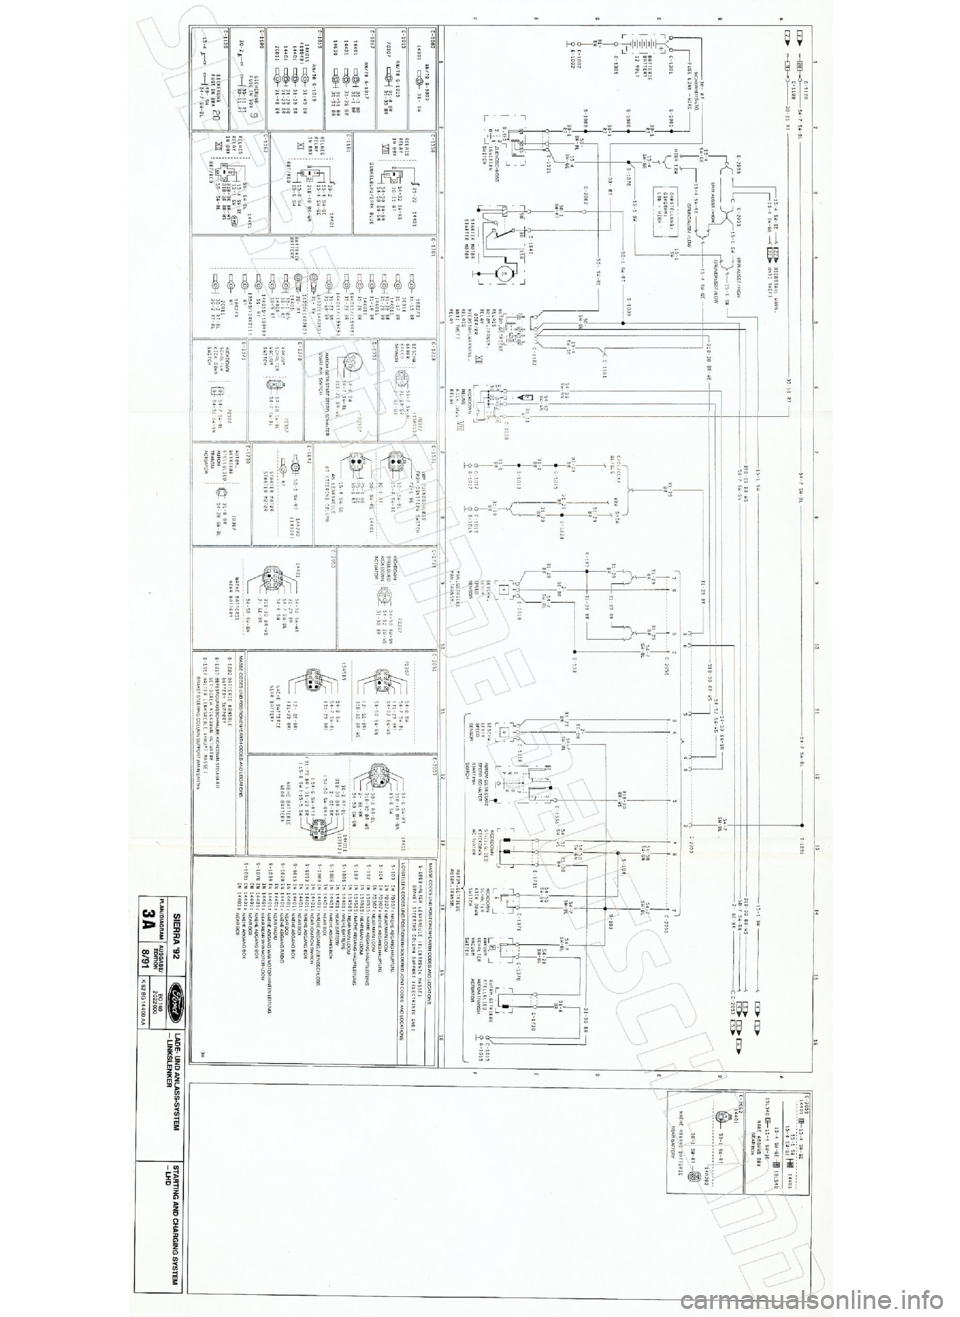 2005 saturn ion window wiring diagram